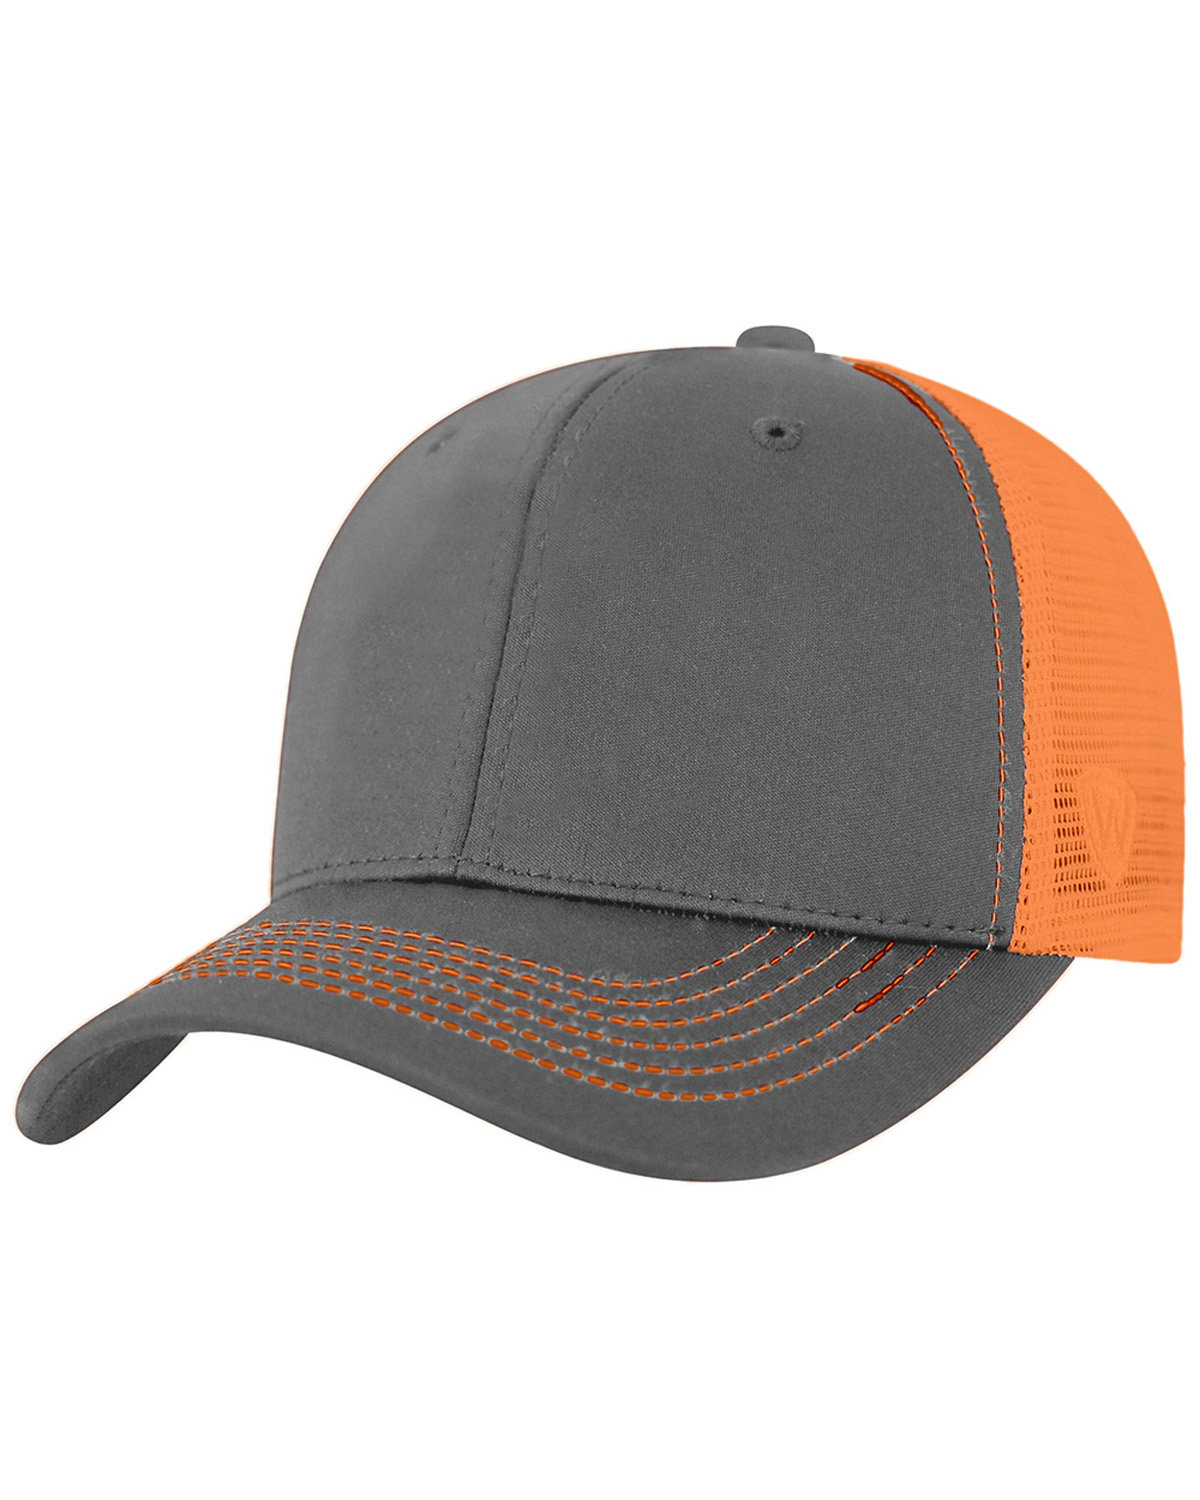 Top Of The World Adult Ranger Cap CHRCL/ NEON ORNG